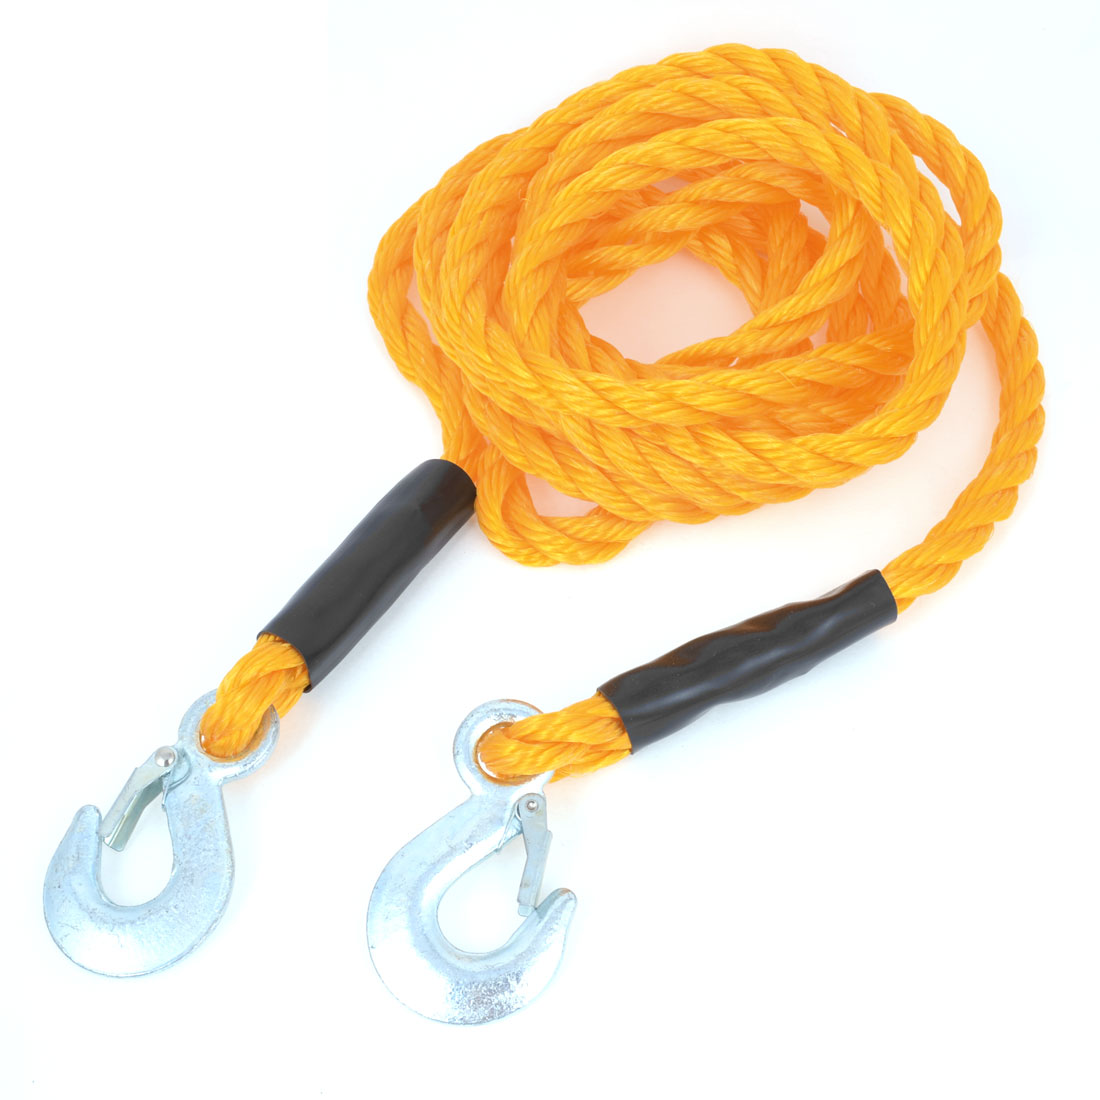 4.5M Long Two Metal Hooks Pulling Strap Towing Rope Yellow Nylon for Auto Car